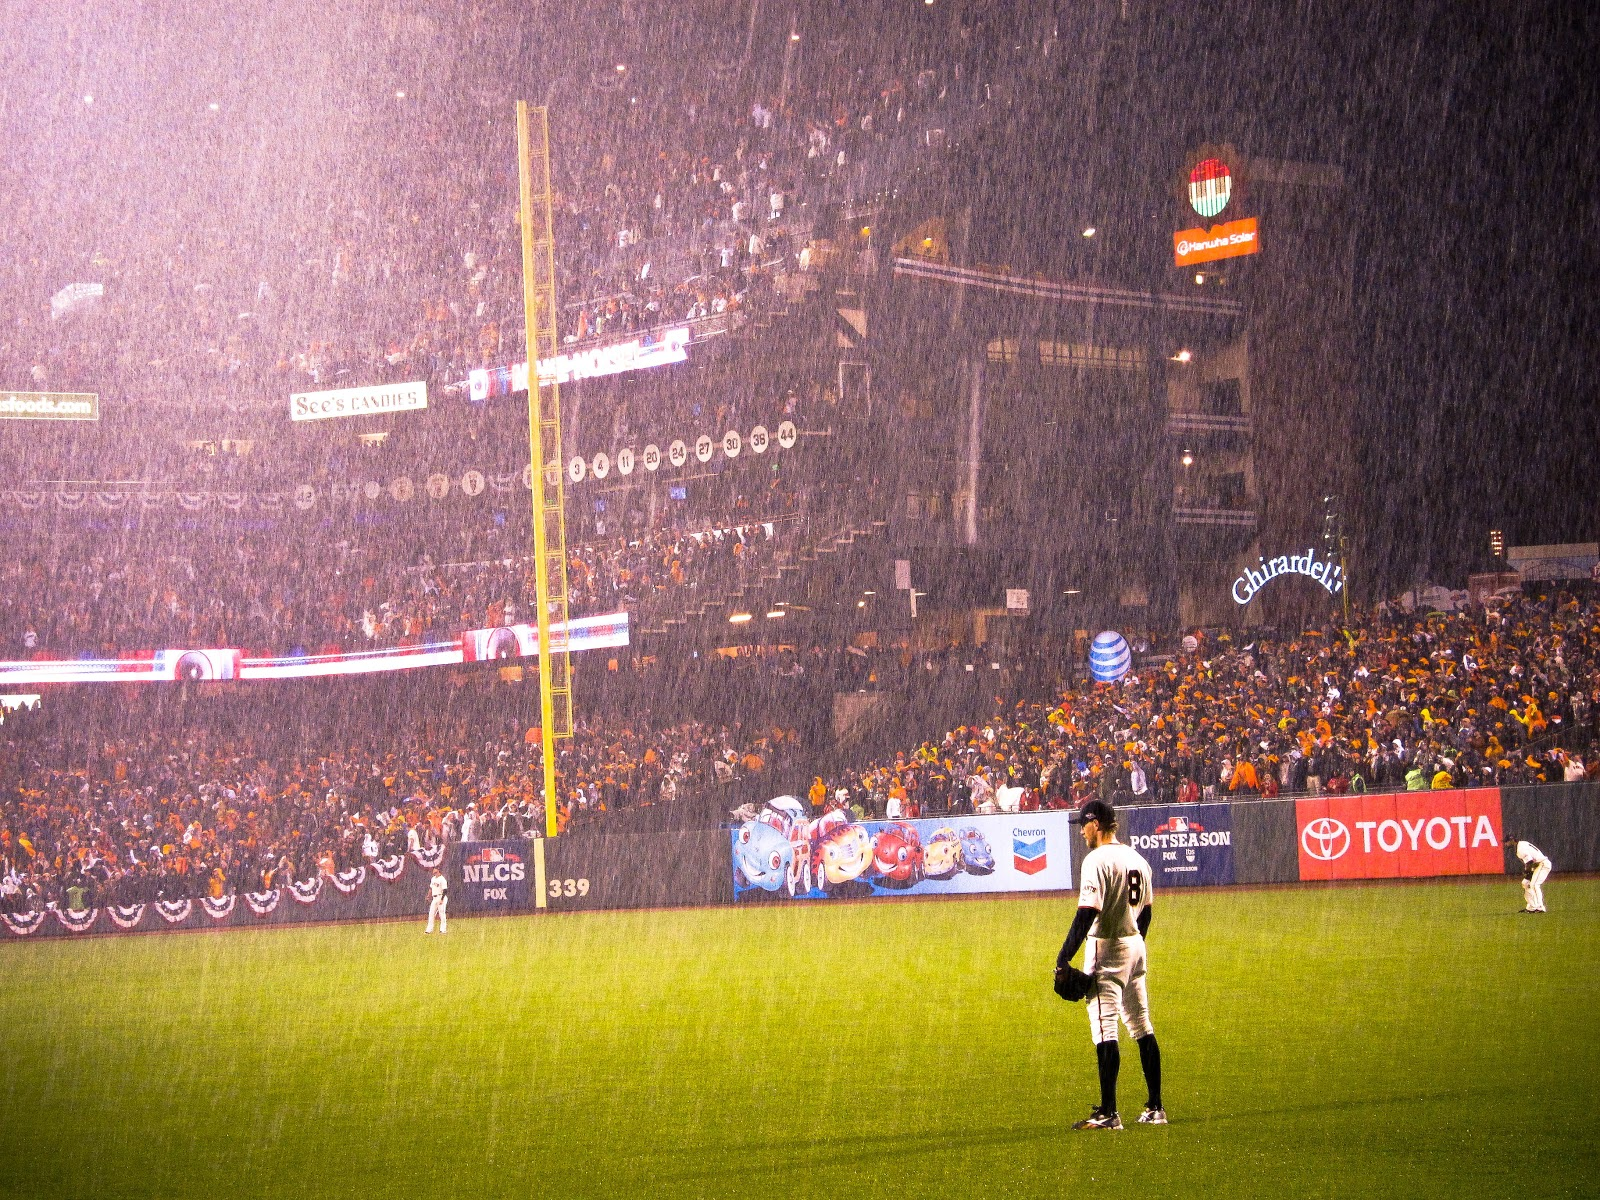 Hunter Pence Stands In Right Field Amid A Downpour Photo By Joe Sciarrillo